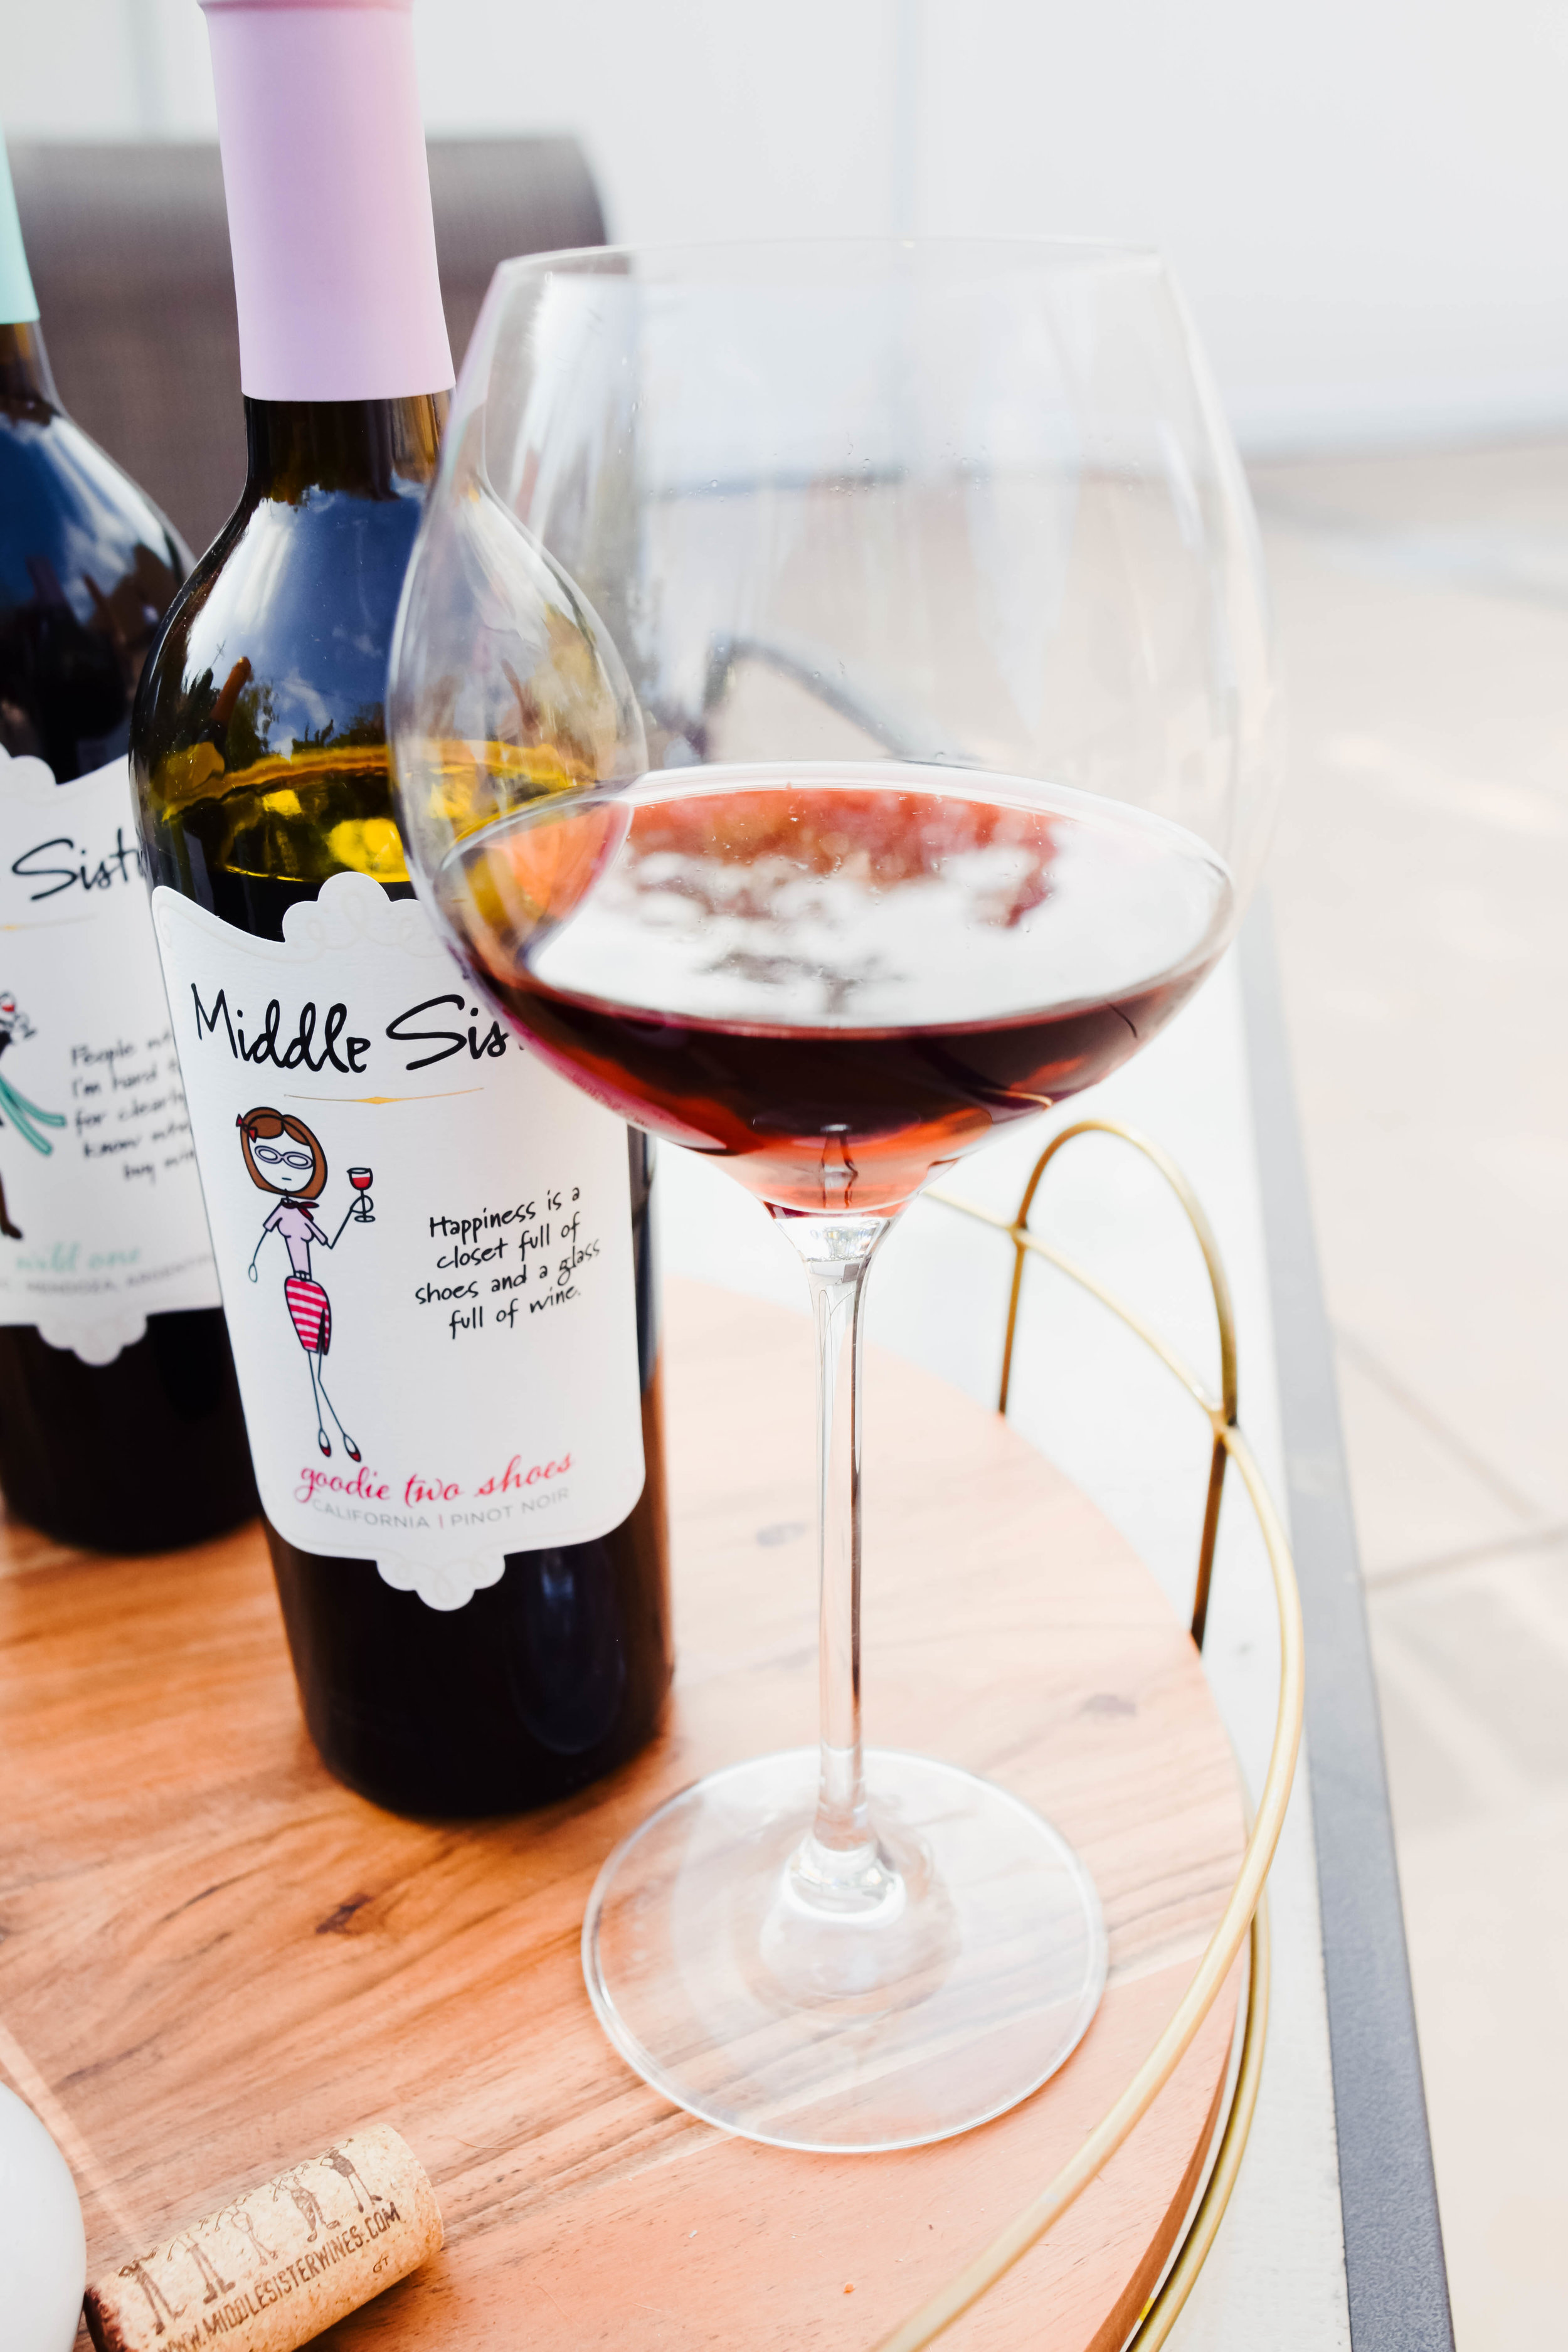 16 Things to do with your spouse from the comfort of your home - Middle Sister Wines